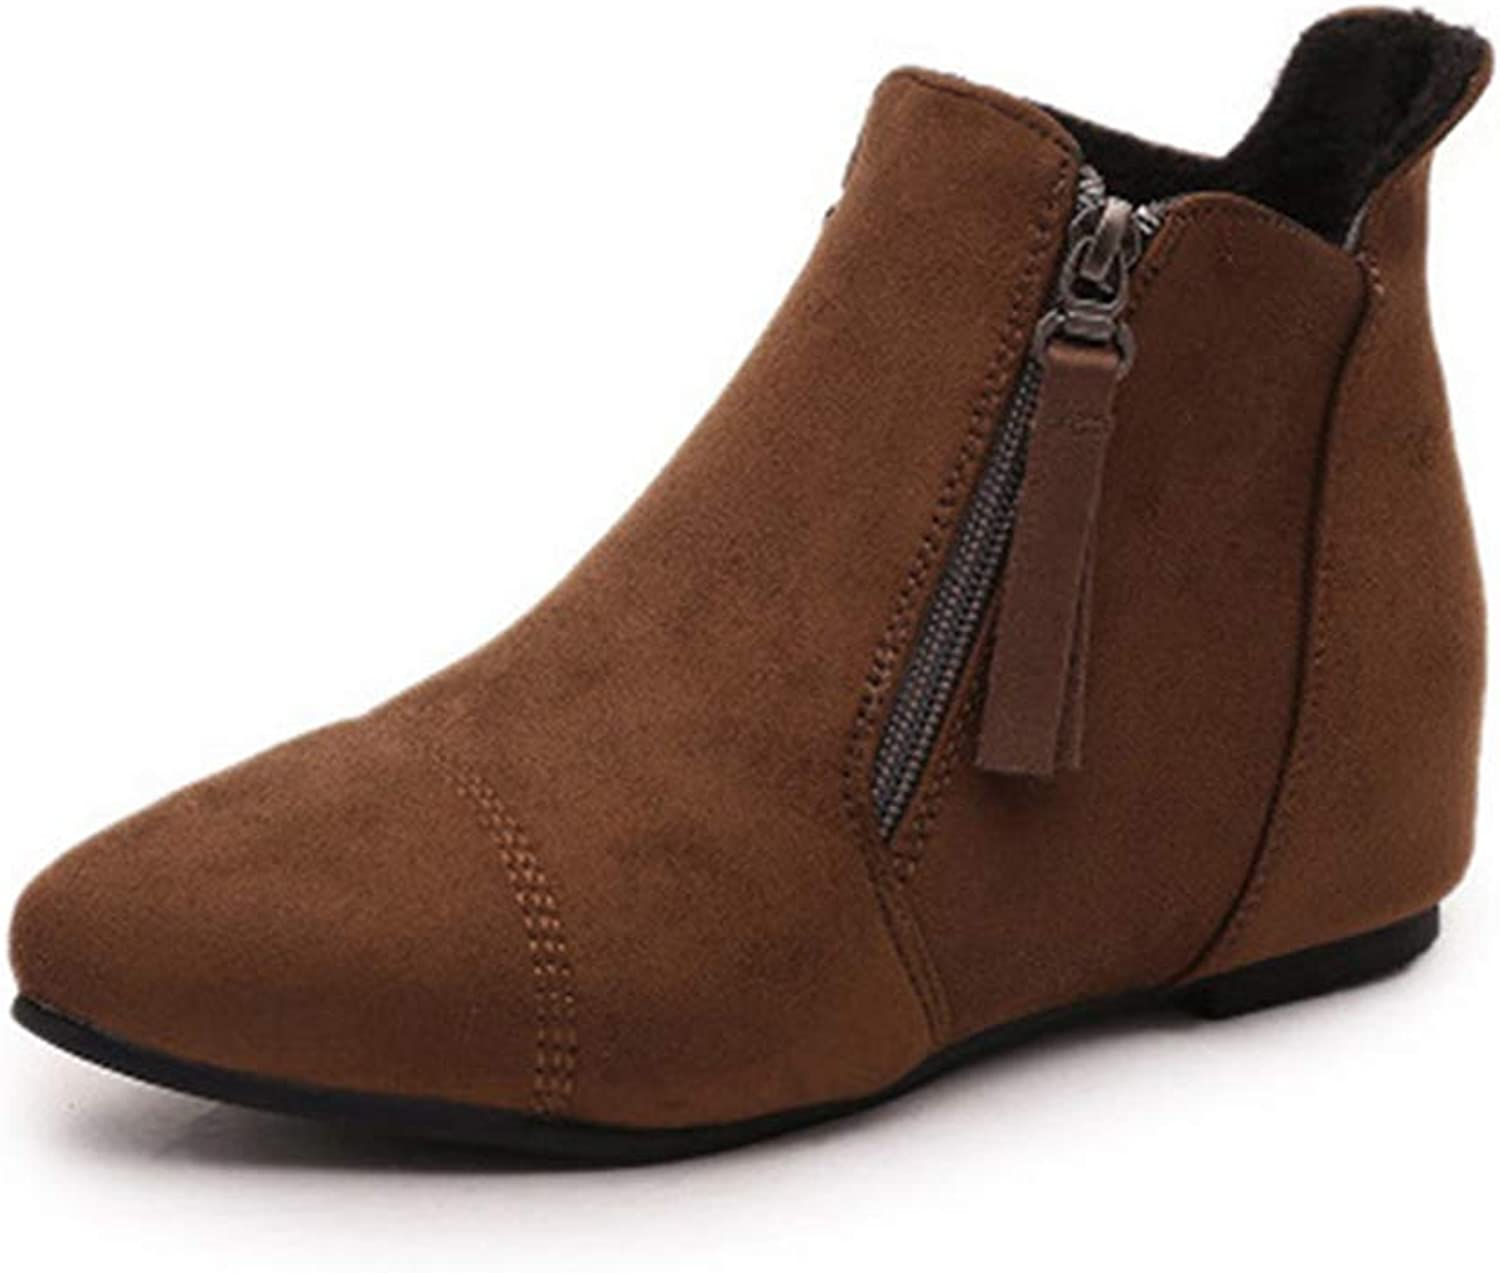 GIY Women's Pointed Toe Chelsea Ankle Boots Casual Suede Zipper Bootie Flat Low Heel Winter Short Boot